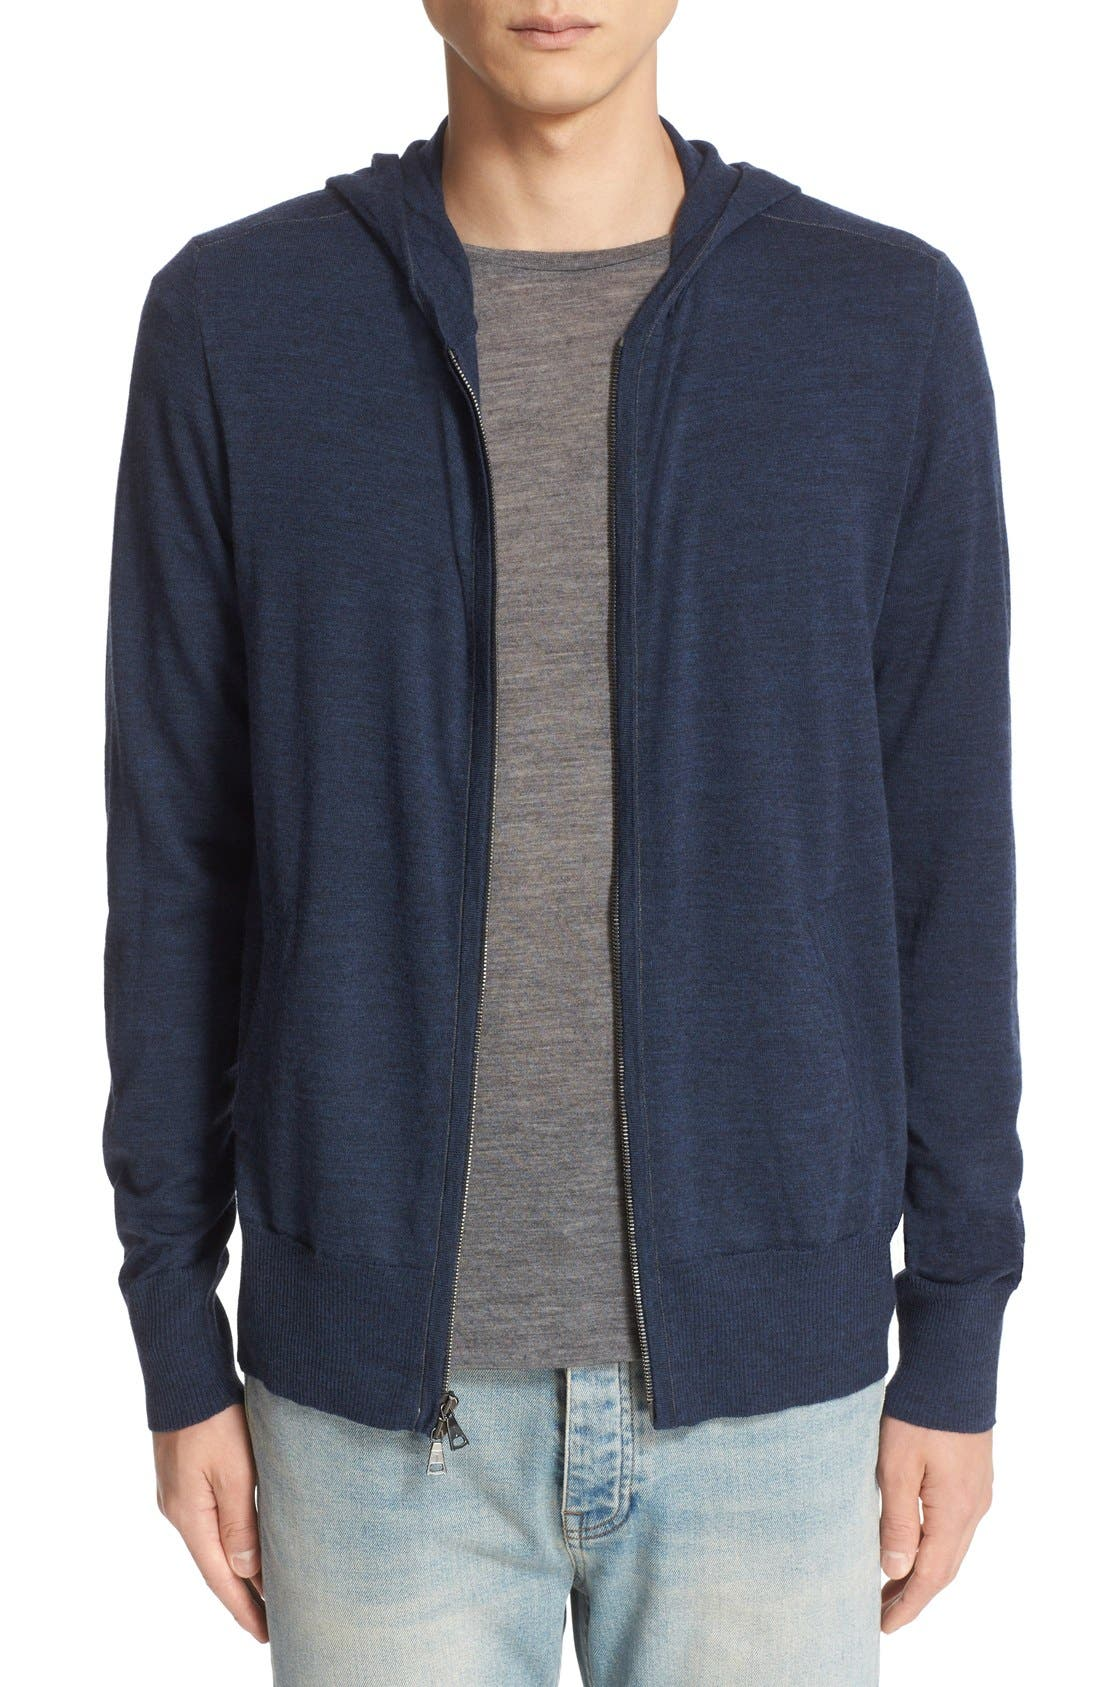 Main Image - John Varvatos Collection Merino Wool Zip Hoodie